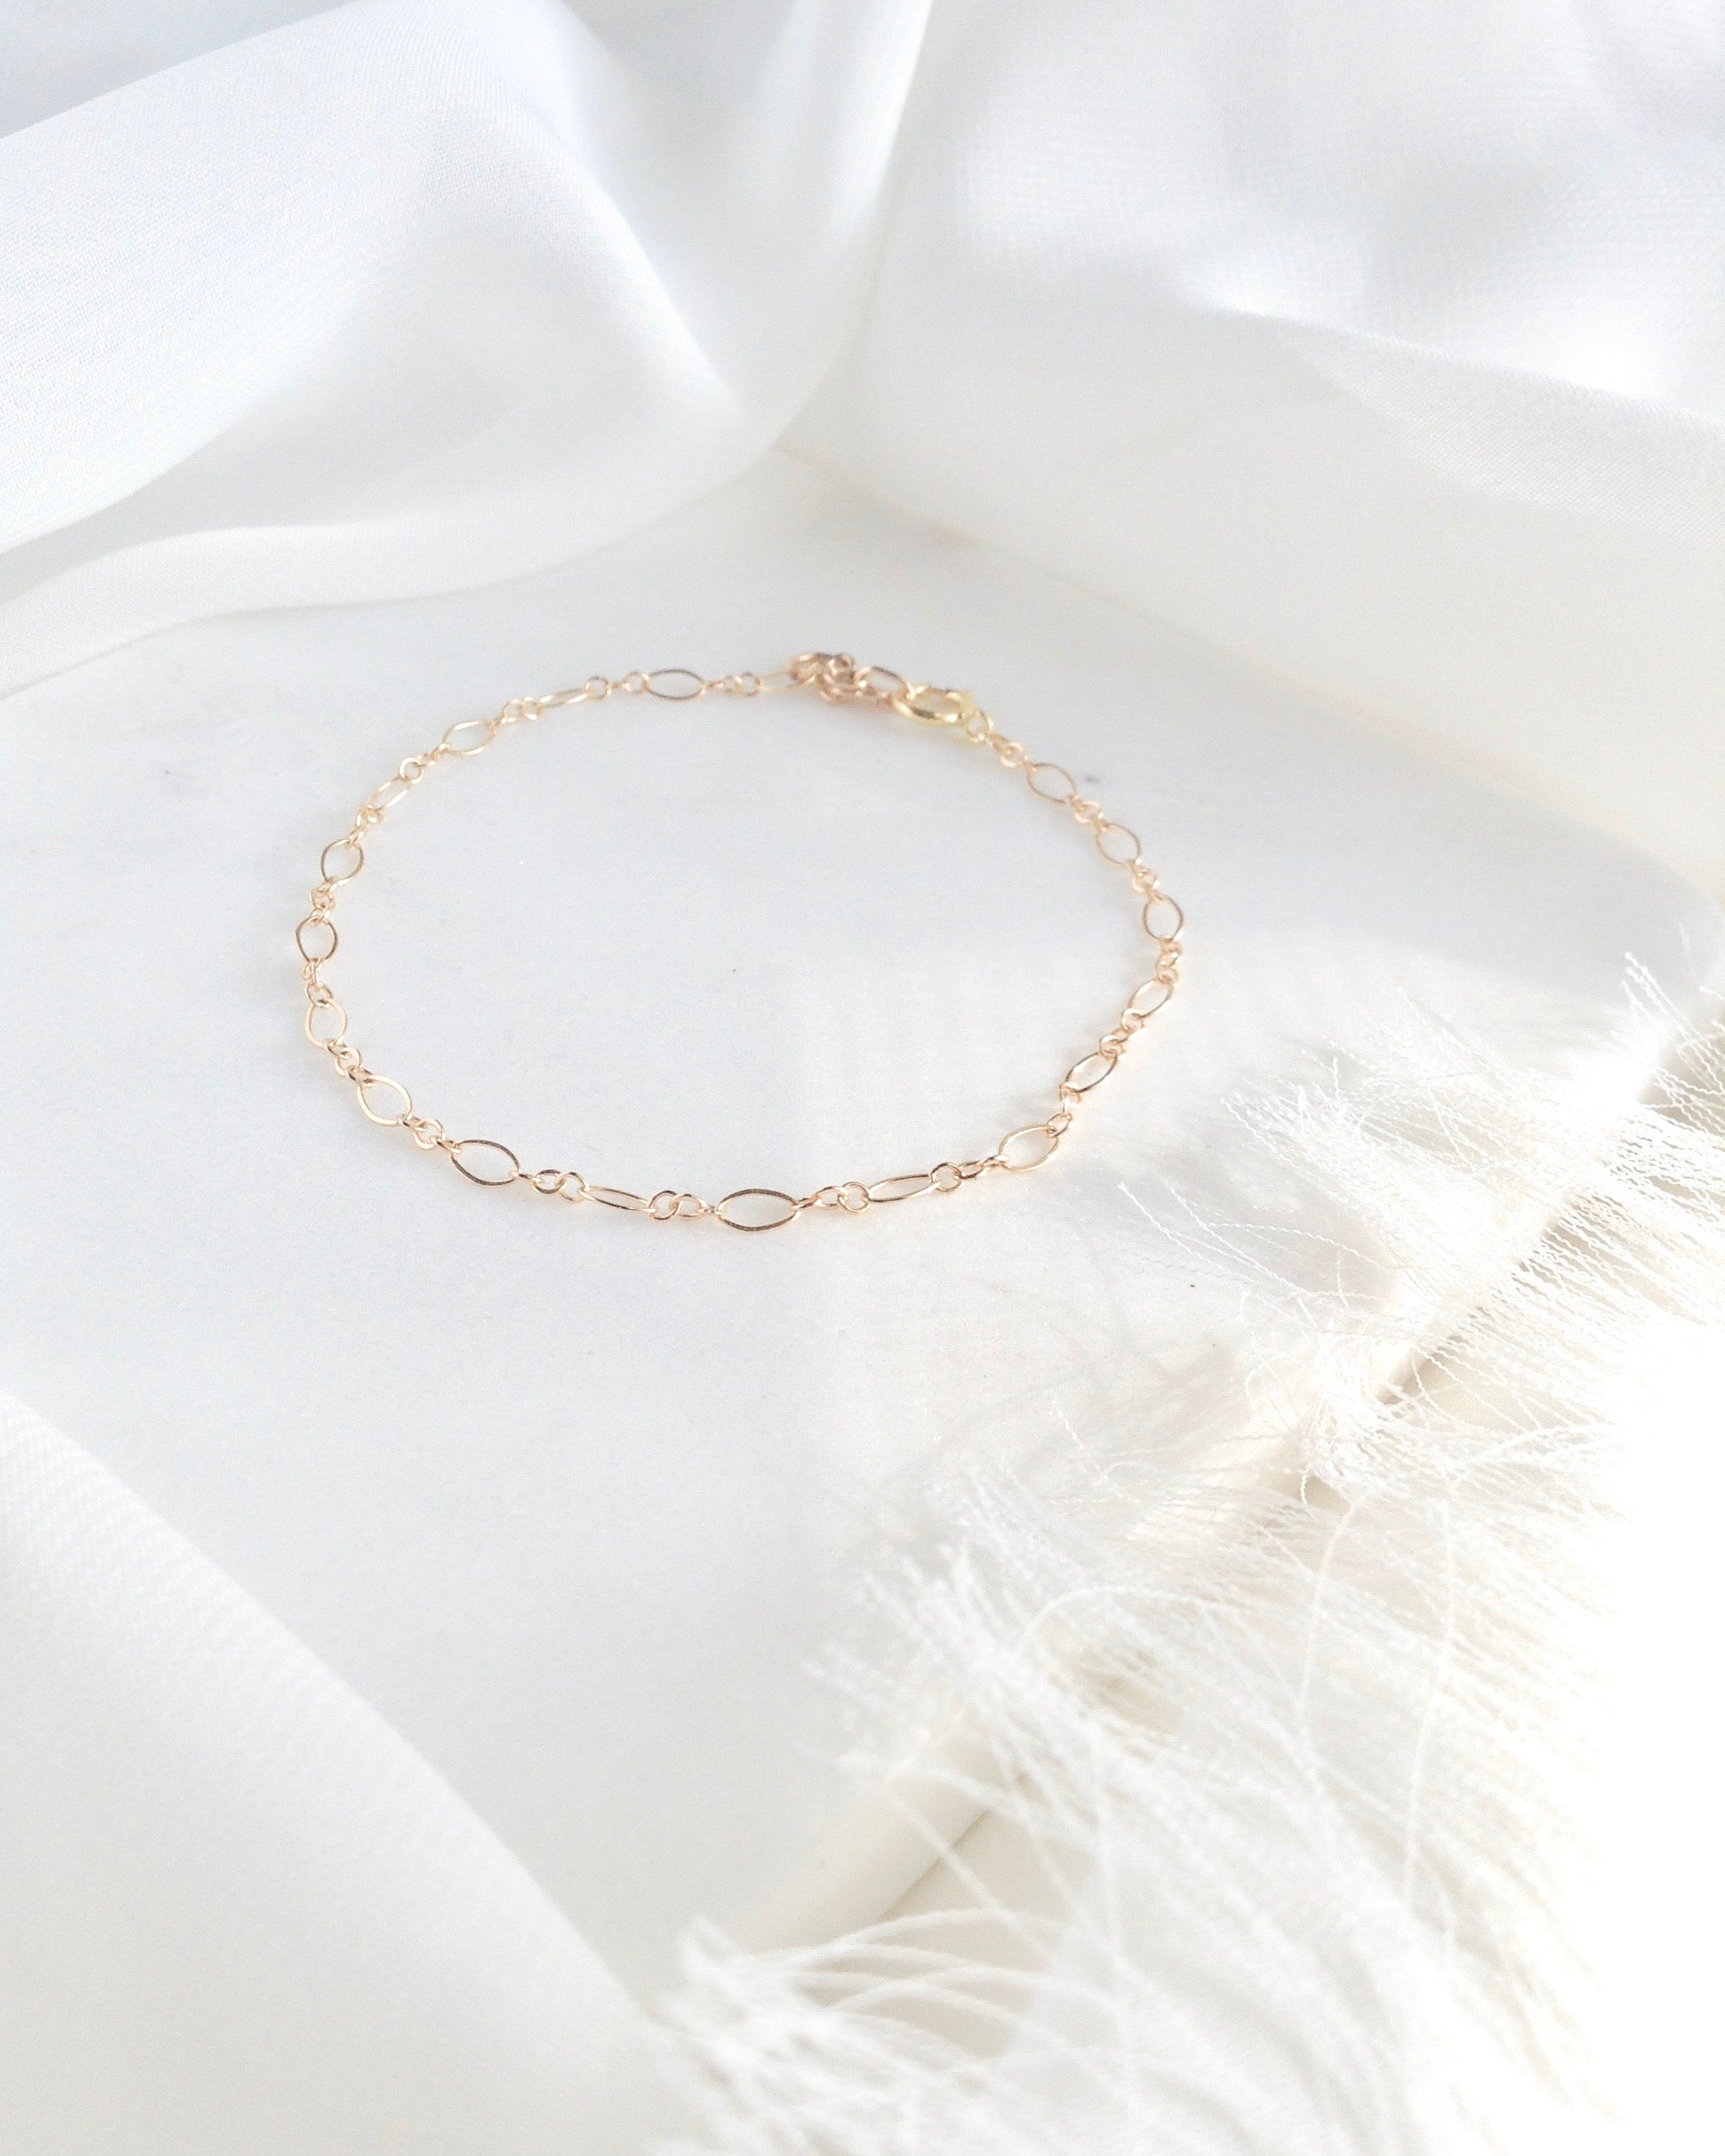 Oval Link Delicate Gold Filled or Sterling Silver Chain Bracelet | IB Jewelry